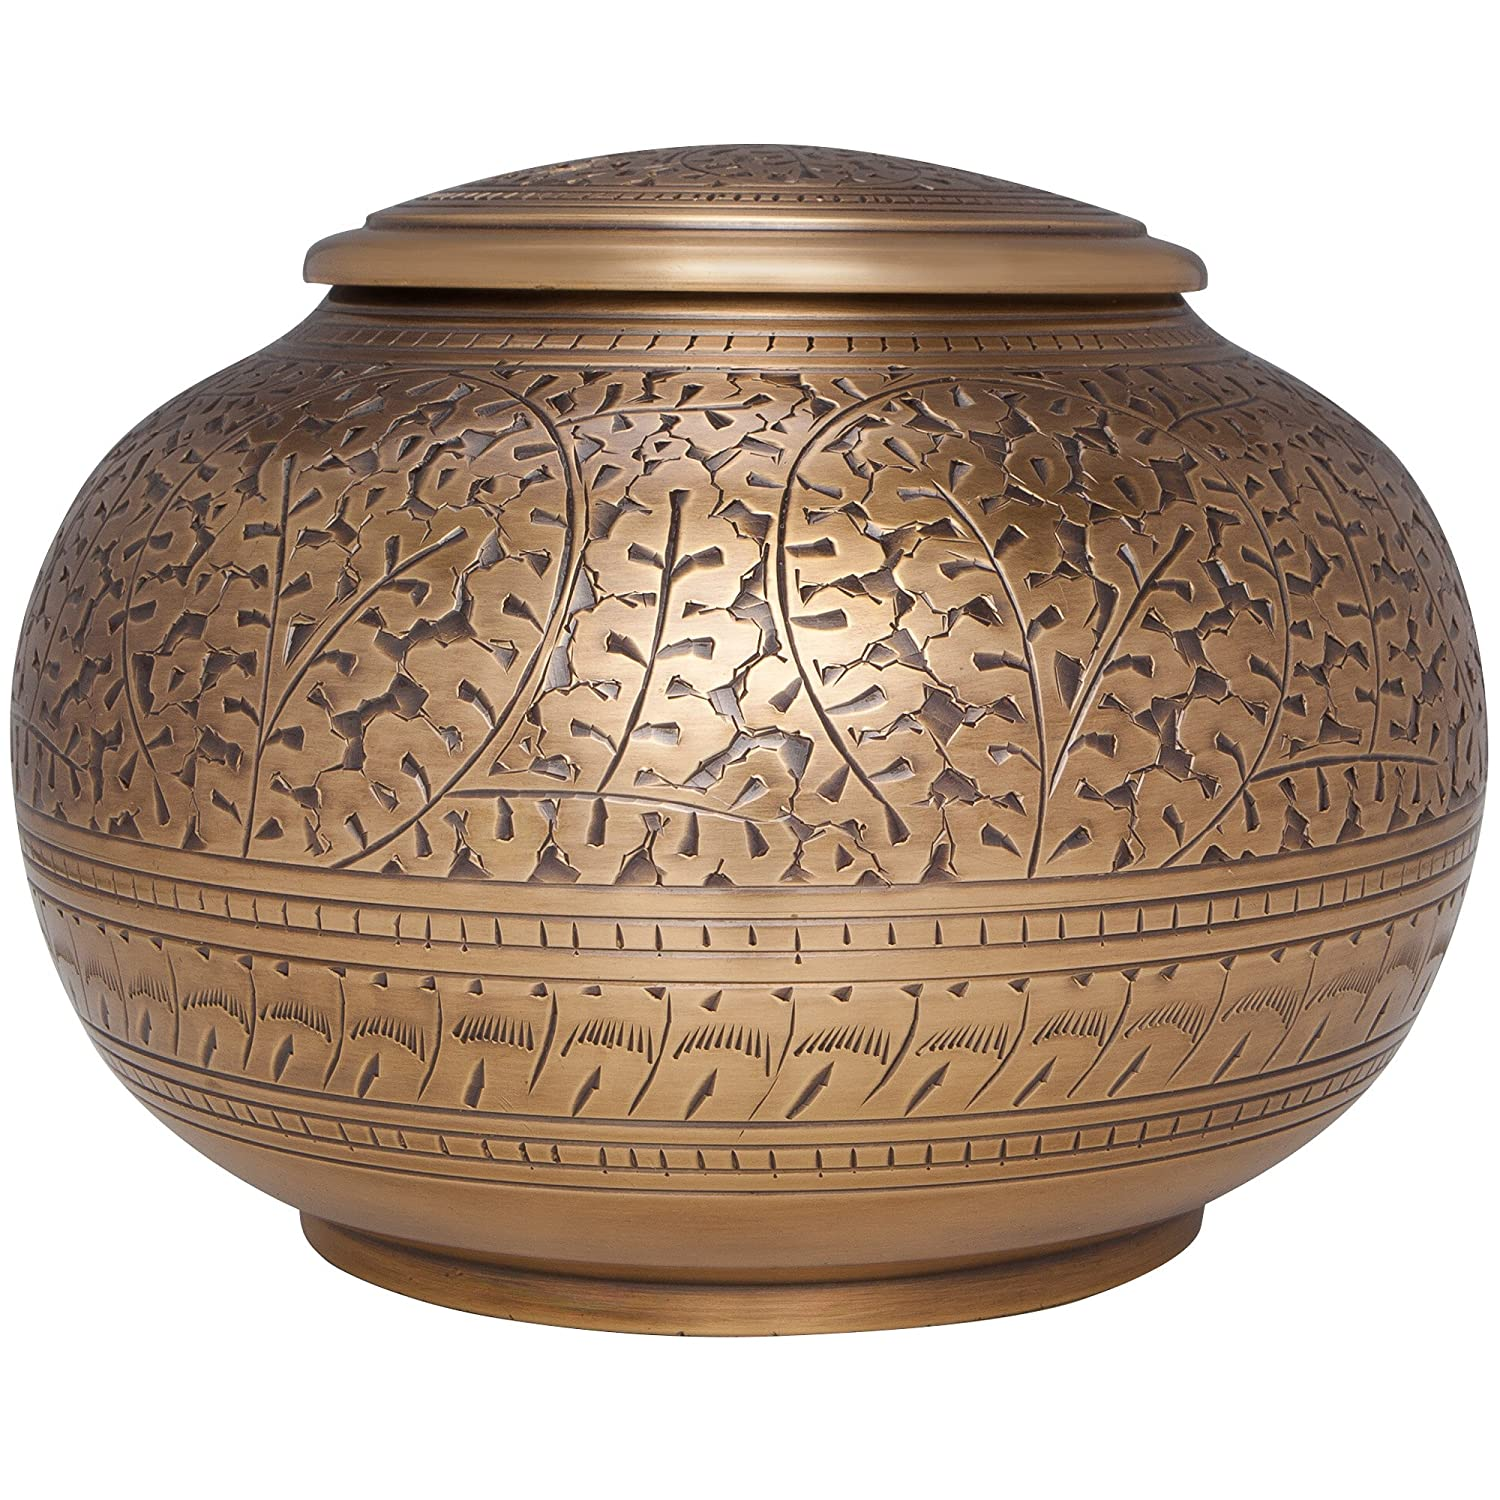 Antique Bronze Brass Cremation Urn - Low Profile Vignette model fremation urn for human ashes - Suitable for cemetery burial or niche - Large size fits remains of adults up to 180 lbs Liliane Memorials